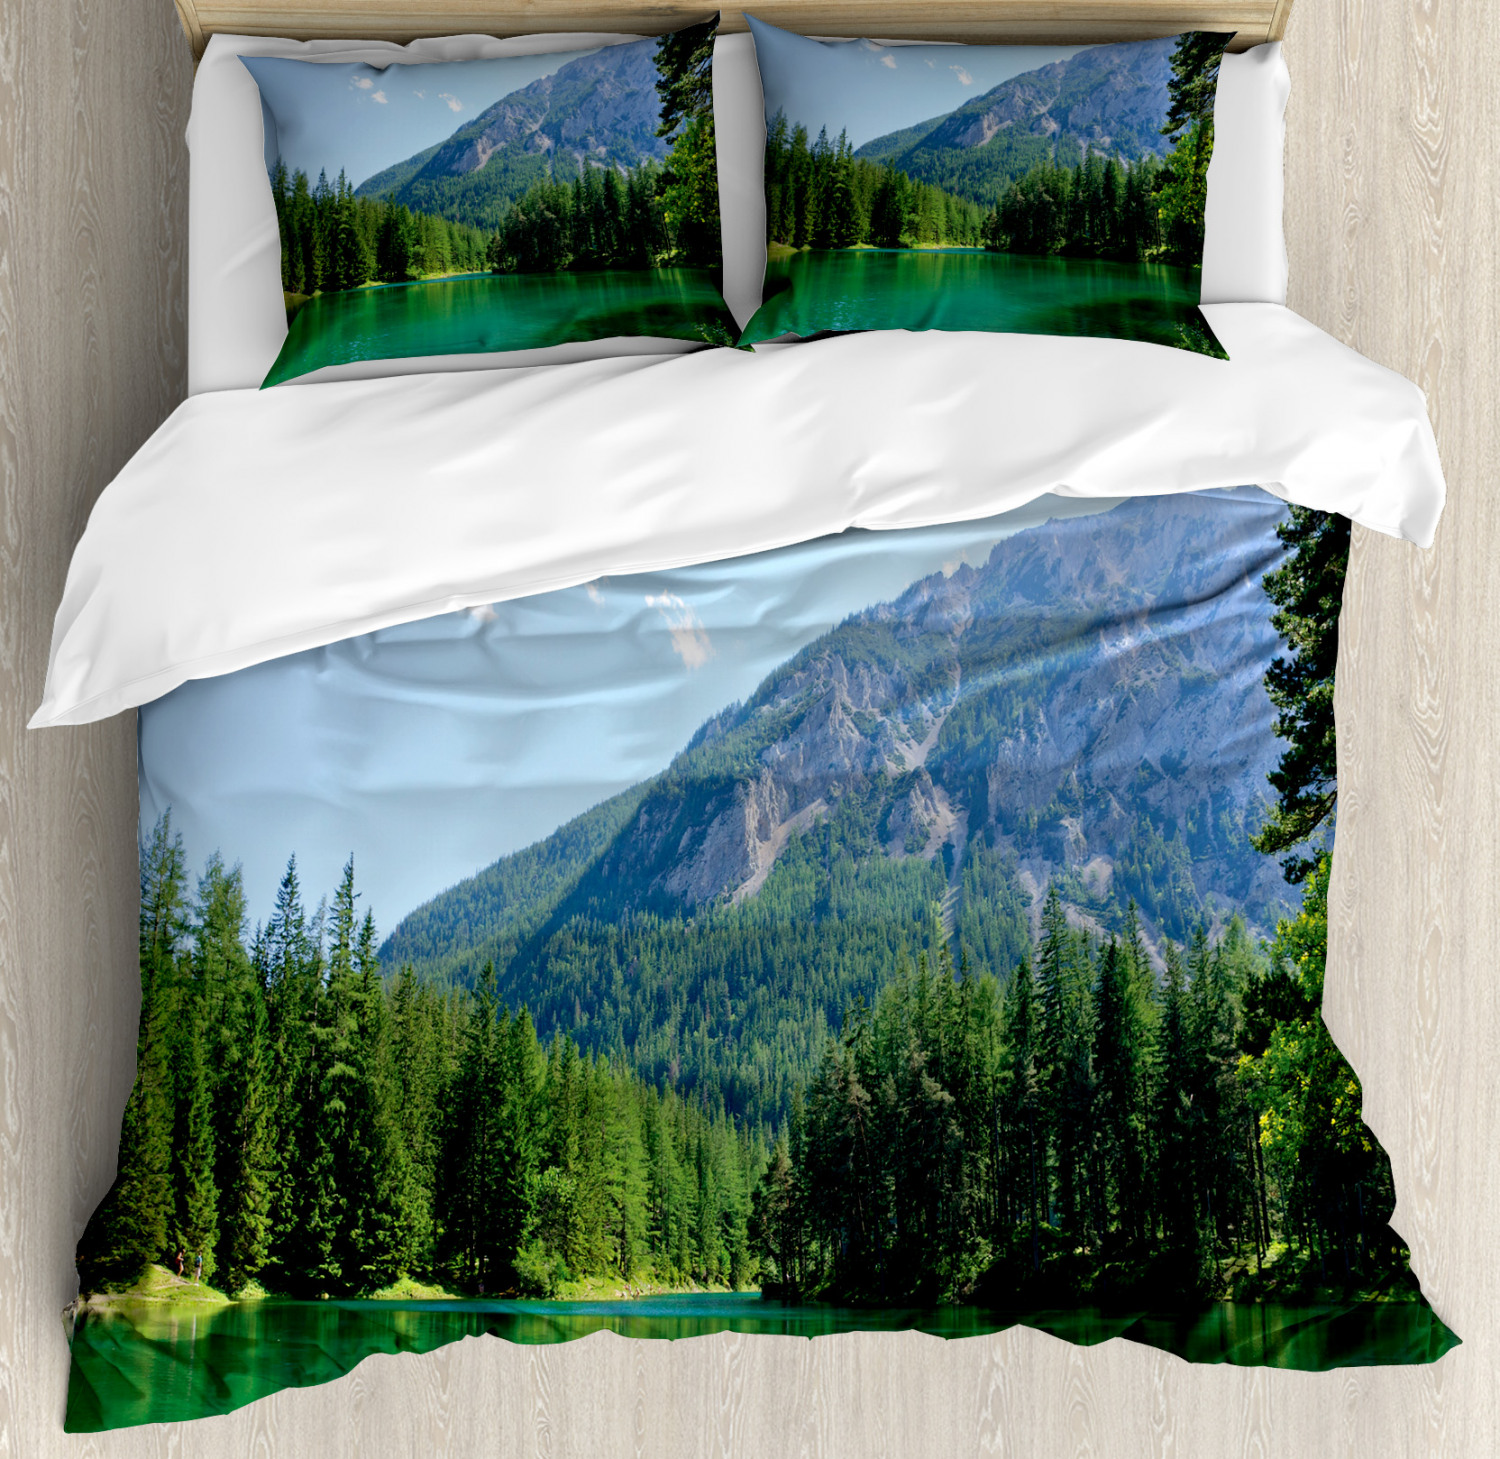 Nature Duvet Cover Set with Pillow Shams Forest Lake in Valley Print